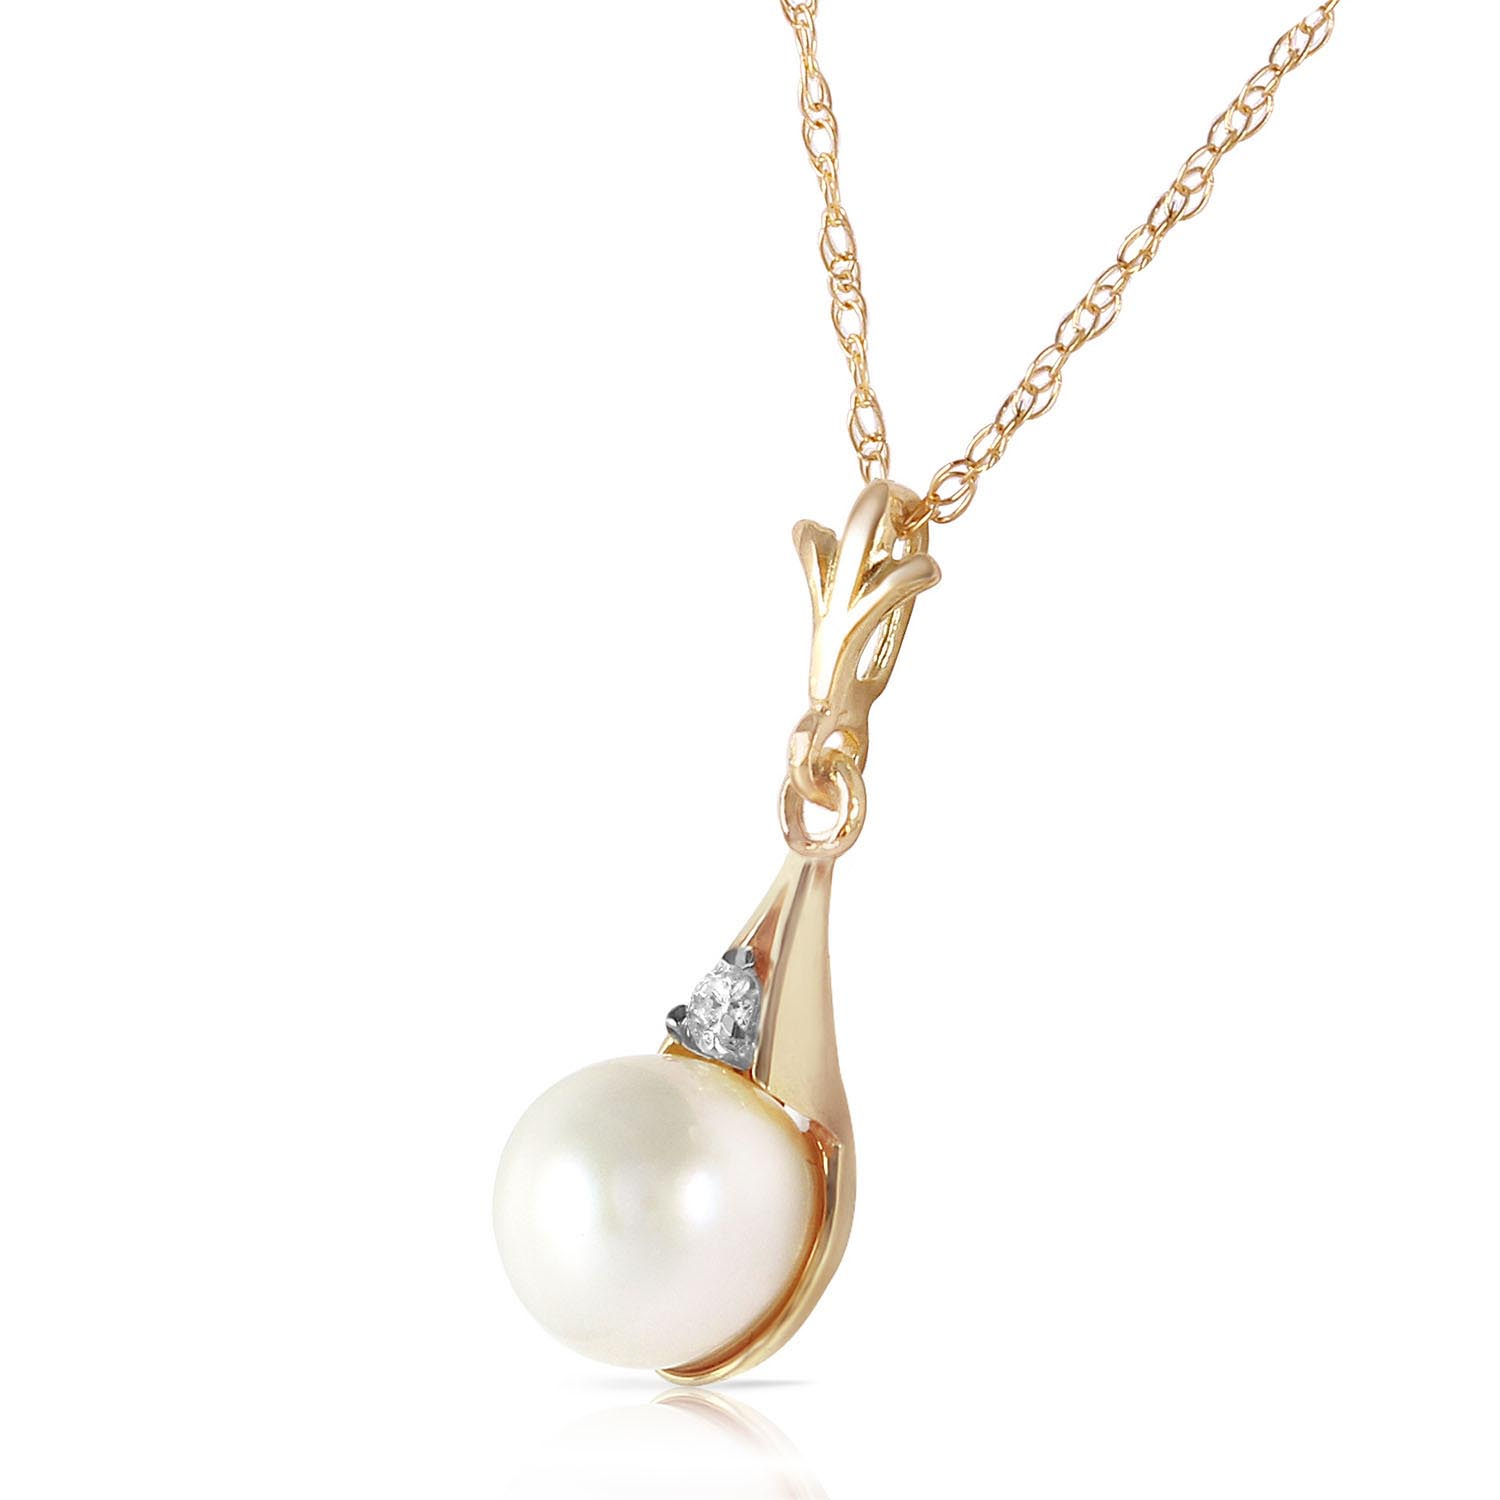 Pearl and Diamond Pendant Necklace 2.0ct in 14K Gold